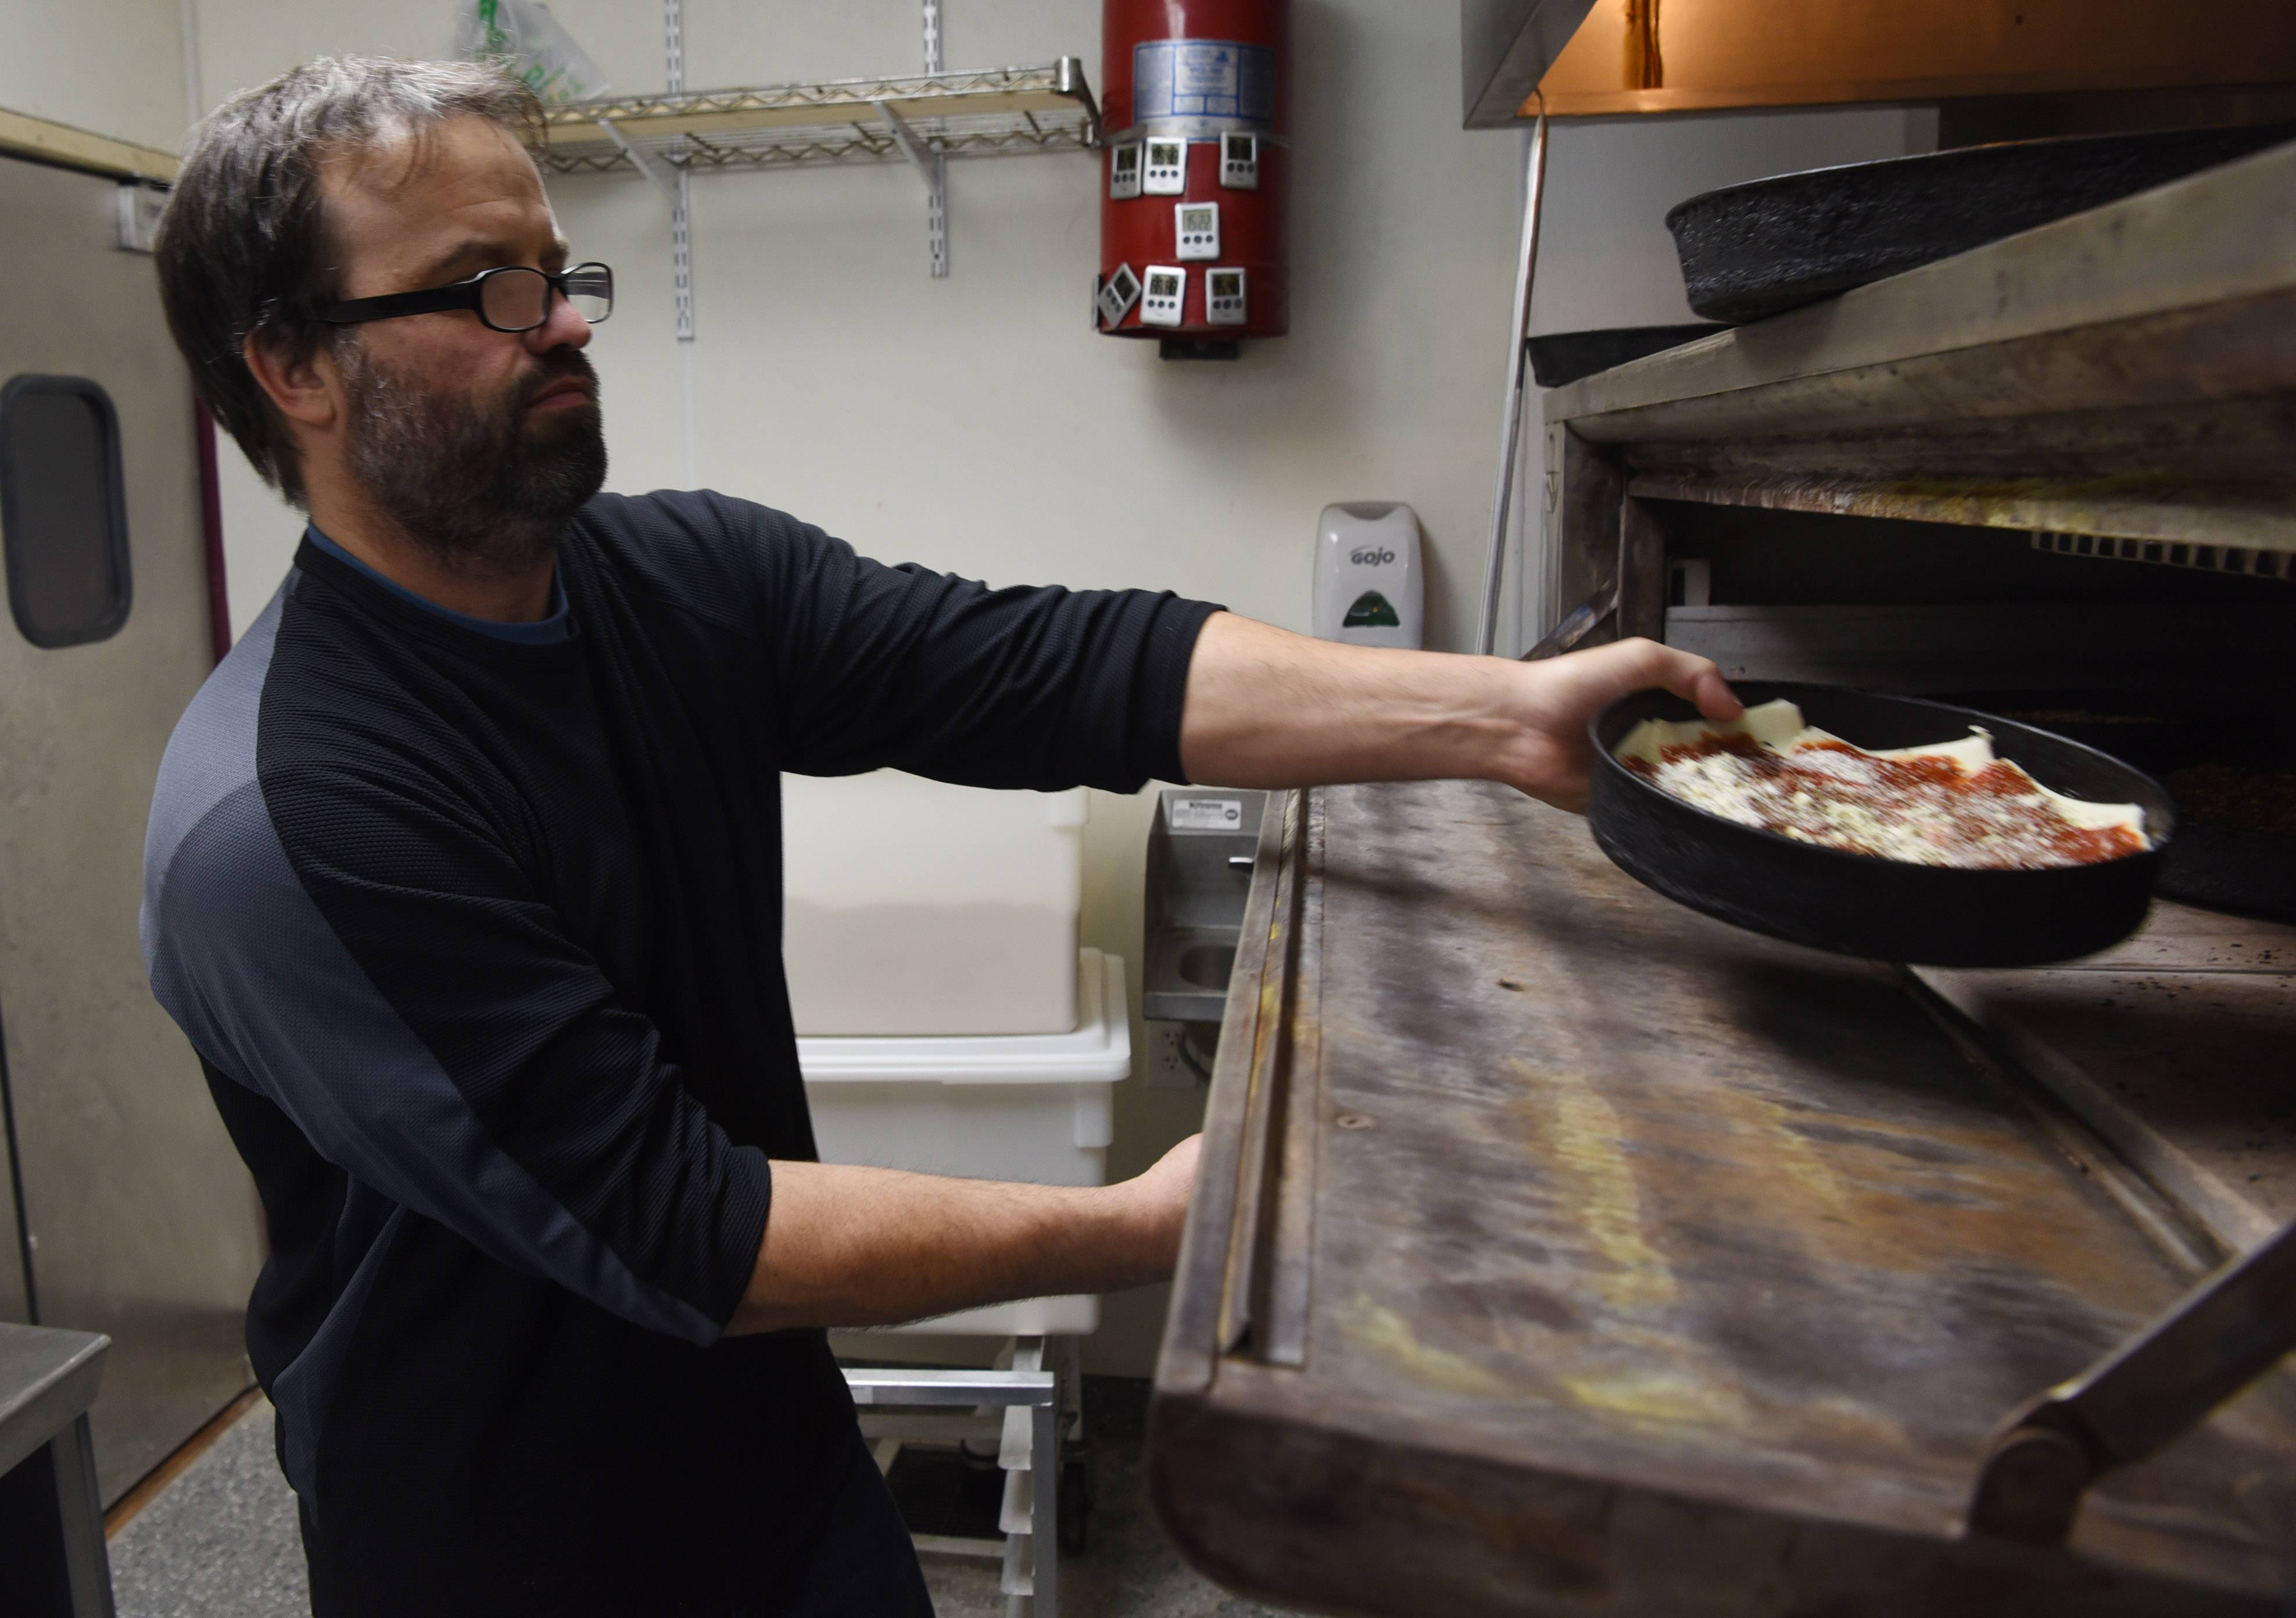 Dying Burt's Place founder passed on pizza recipes from hospital bed